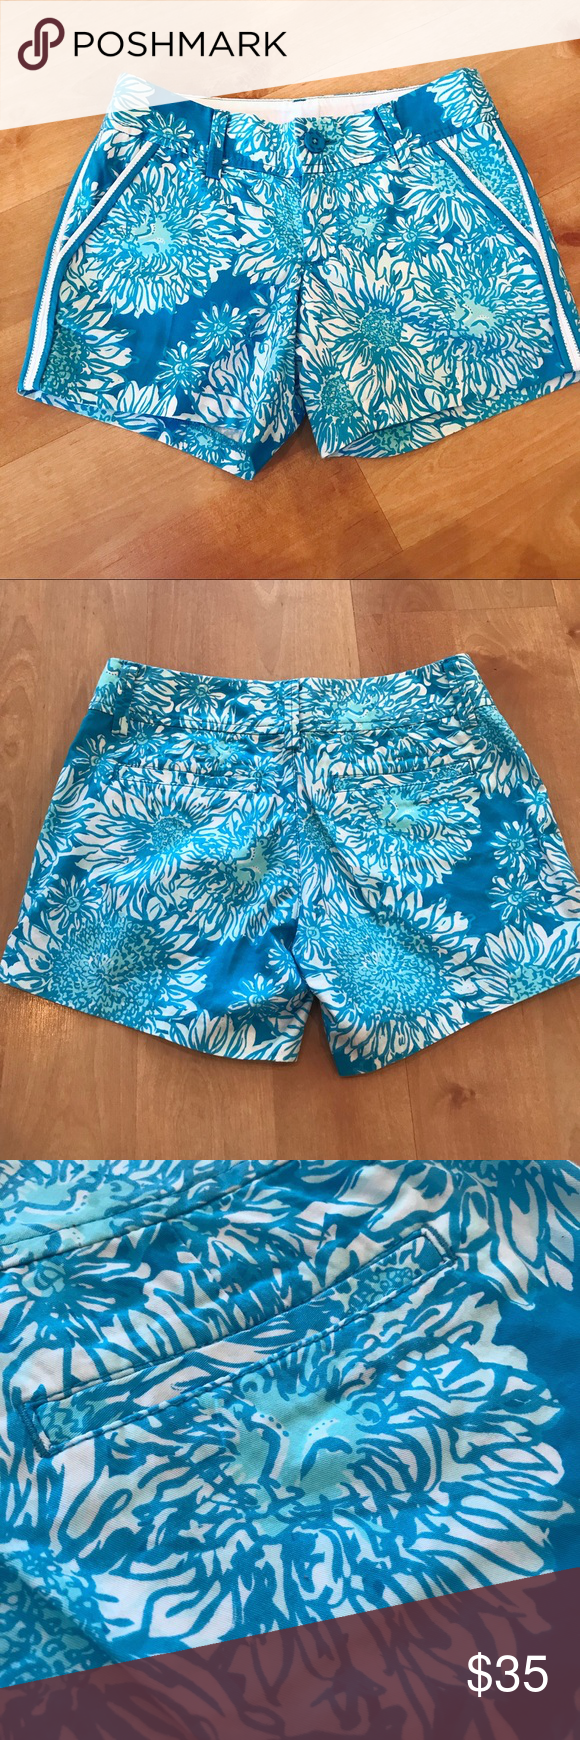 7adfc10686d63c Lilly Pulitzer Size 000 Callahan Shorts Excellent condition. Marked as XXS  since 000 isn't an option! 💙 Lilly Pulitzer Shorts